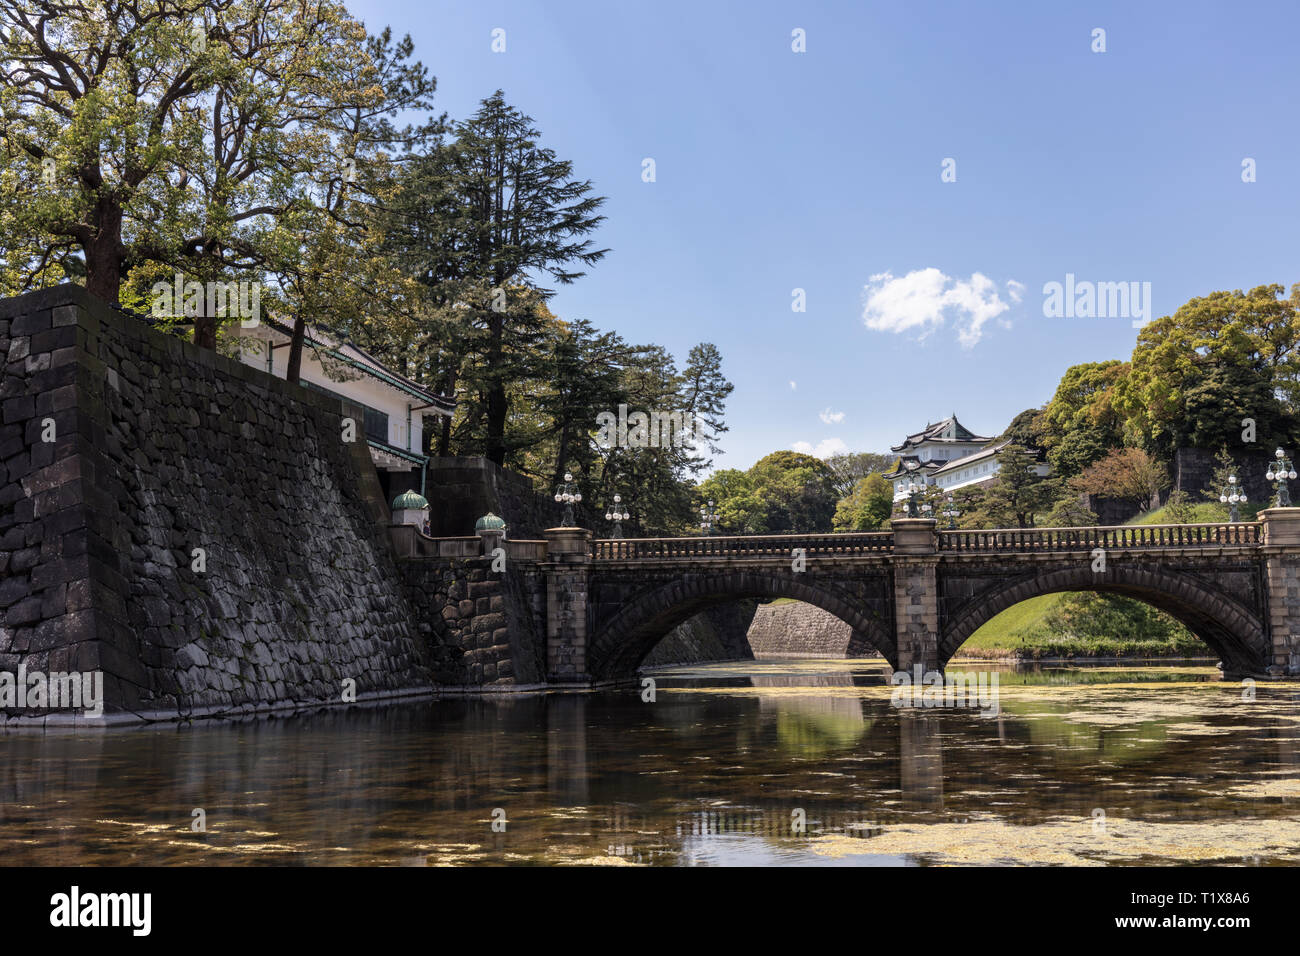 Tokyo, Japan - April 2017: Bridge over the moat at the Imperial Palace in Chiyoda - Stock Image